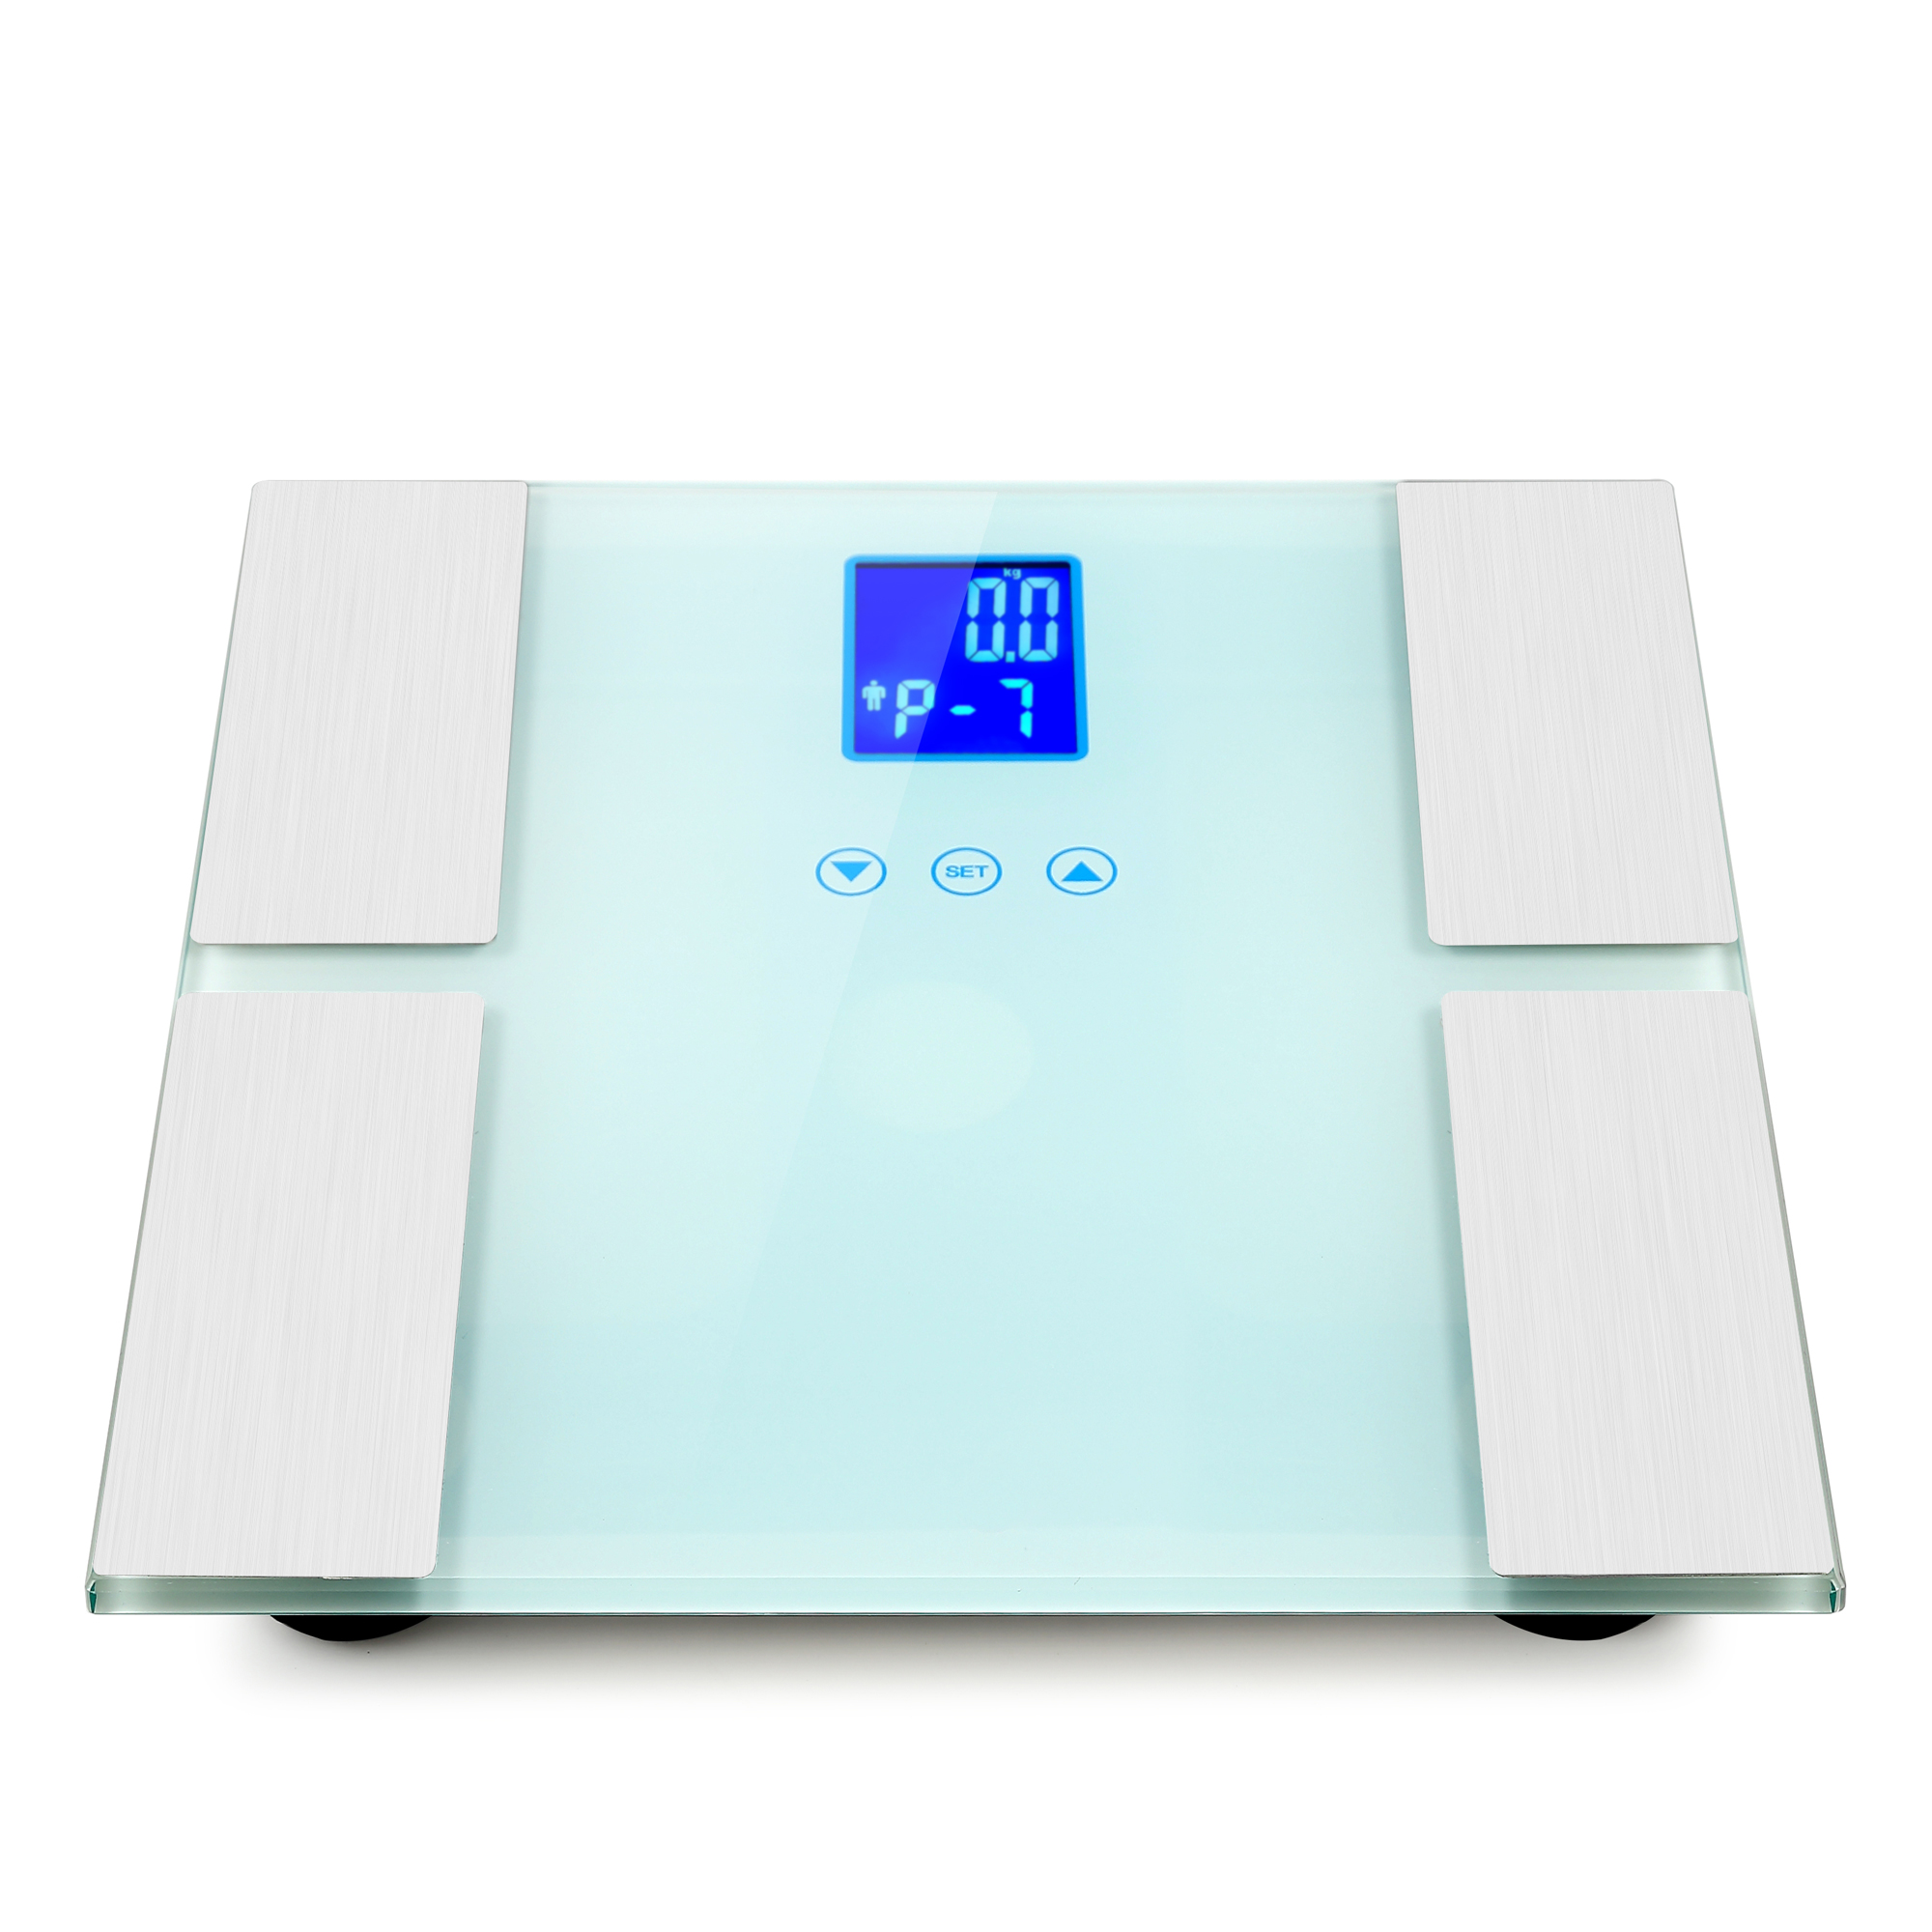 New Design bluetooth bathroom manual camry weight  scale TS-6160